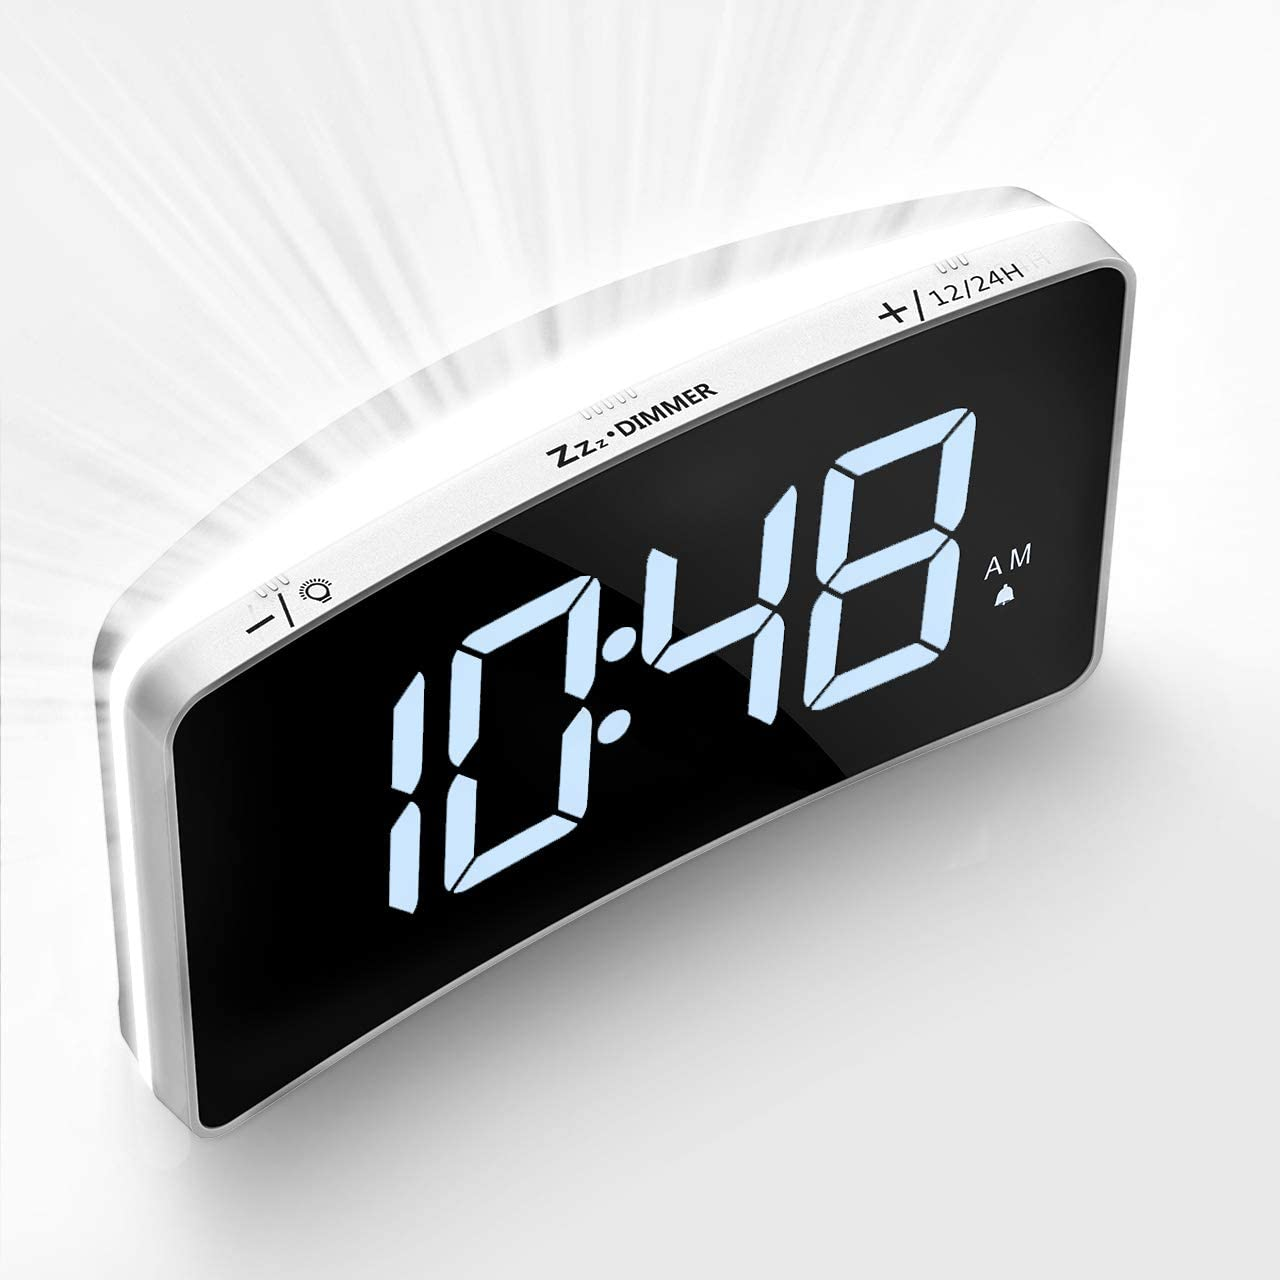 Mpow Digital Alarm Clock 6-Level Brightness and Adjustable Volume, 5 Curved LED Screen, Snooze, 12 24H, Noiseless Touch Button, Outlet Powered, 2.White